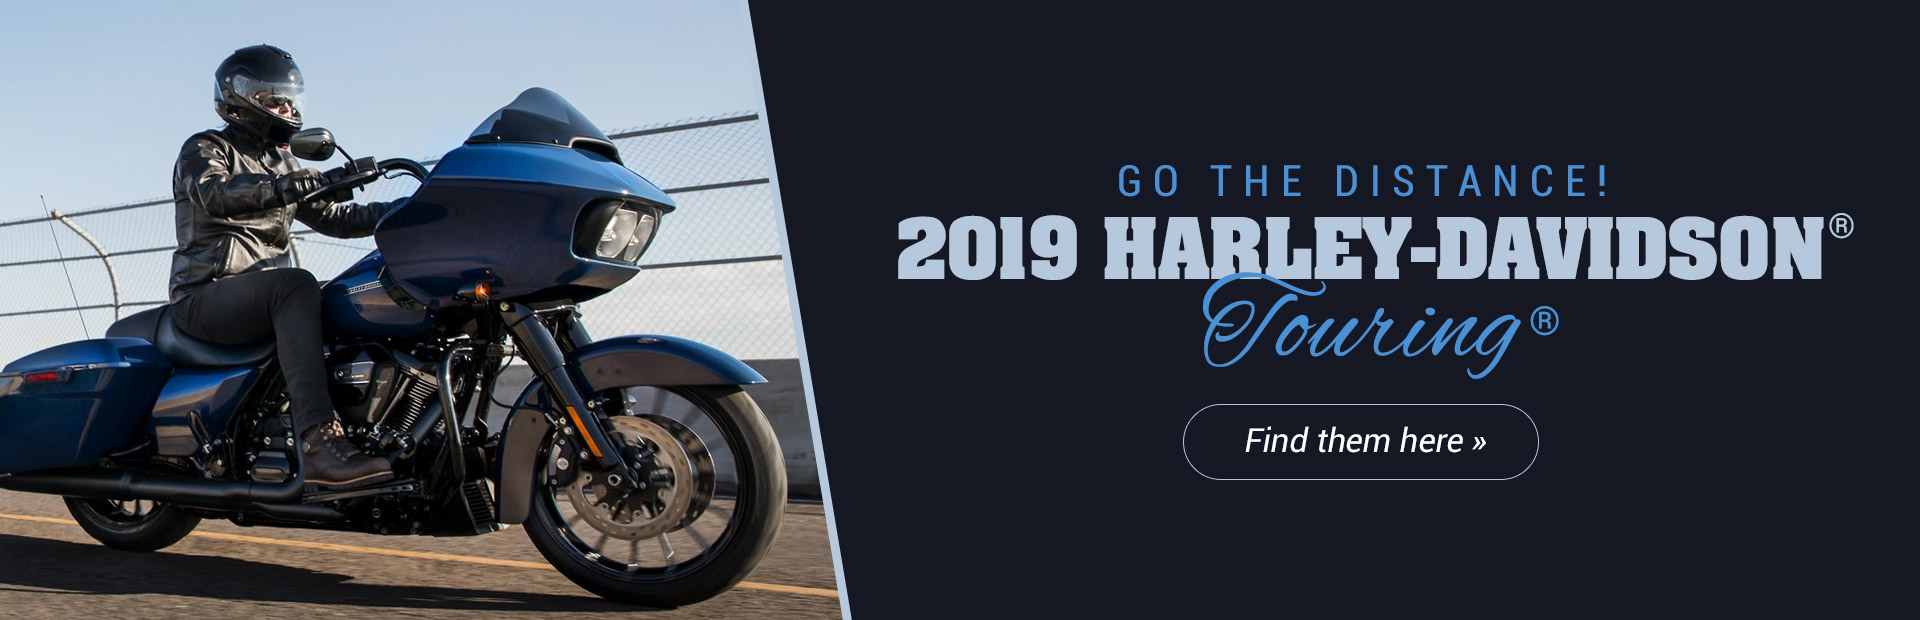 2019 Harley-Davidson® Touring®: Click here to view the models.